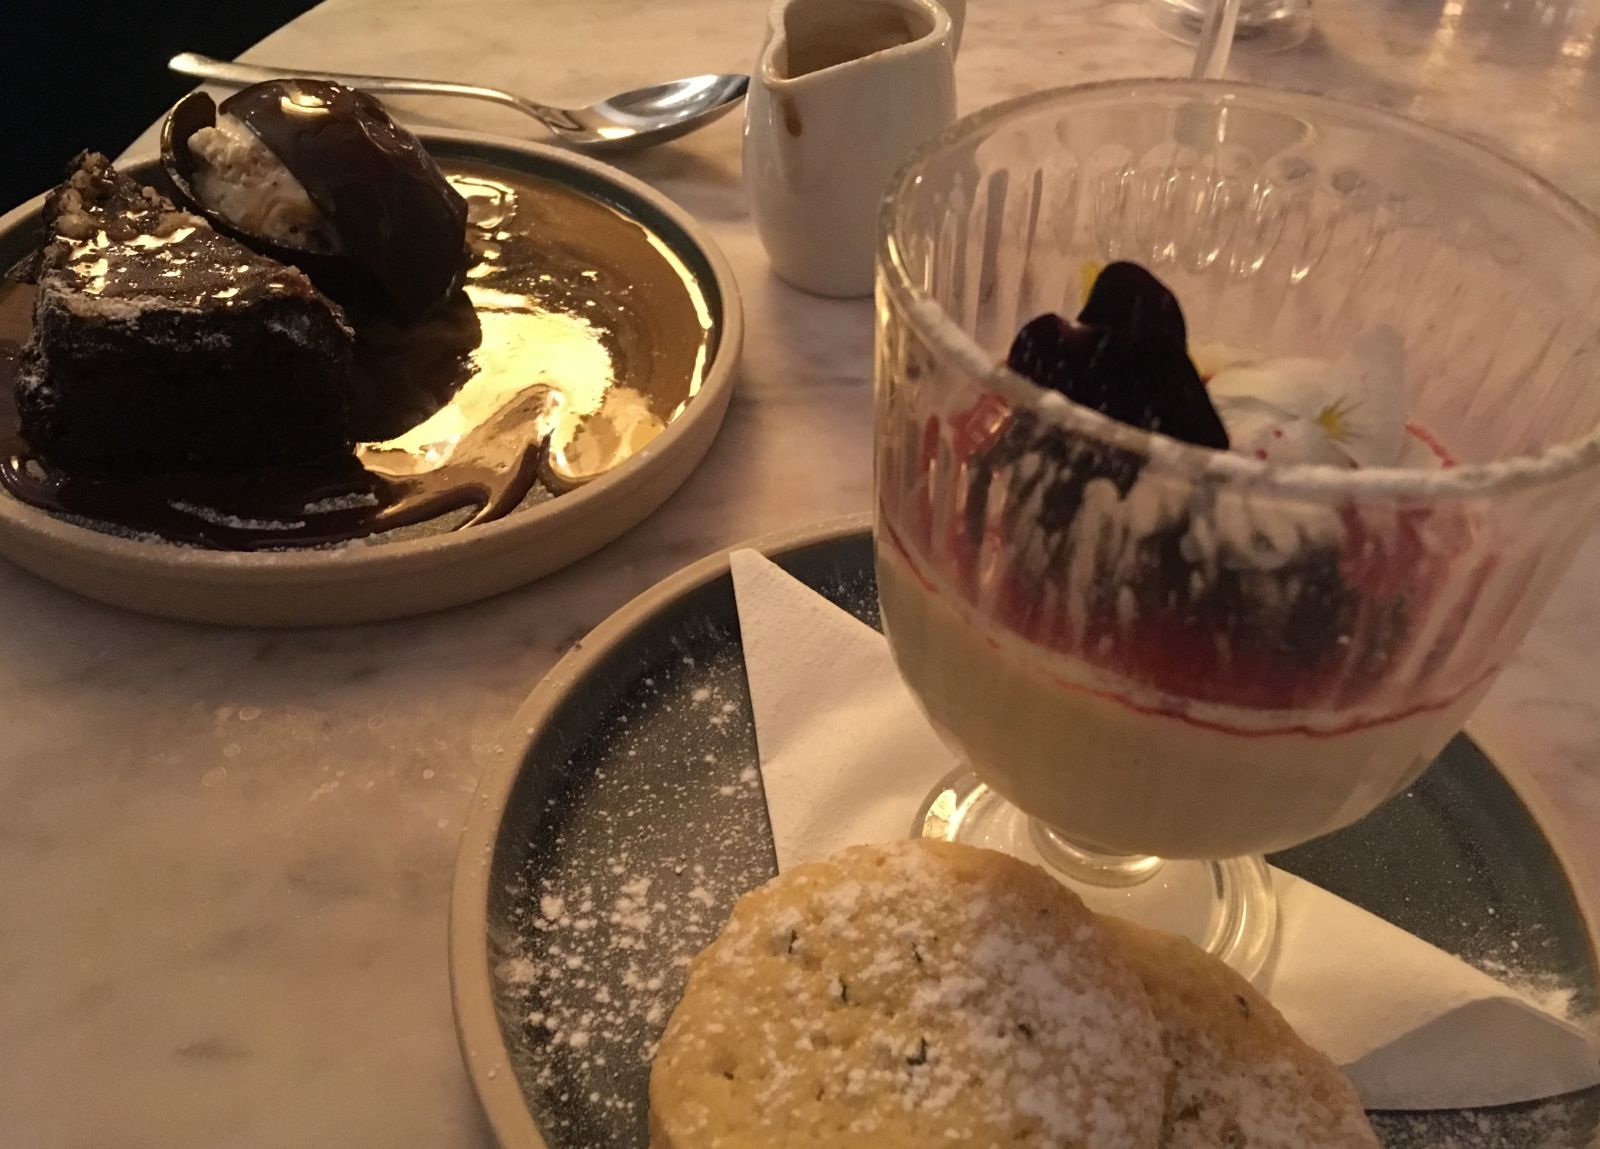 Lemon posset with mixed berry compote and chocolate dome with hazelnut torte at Aqua.